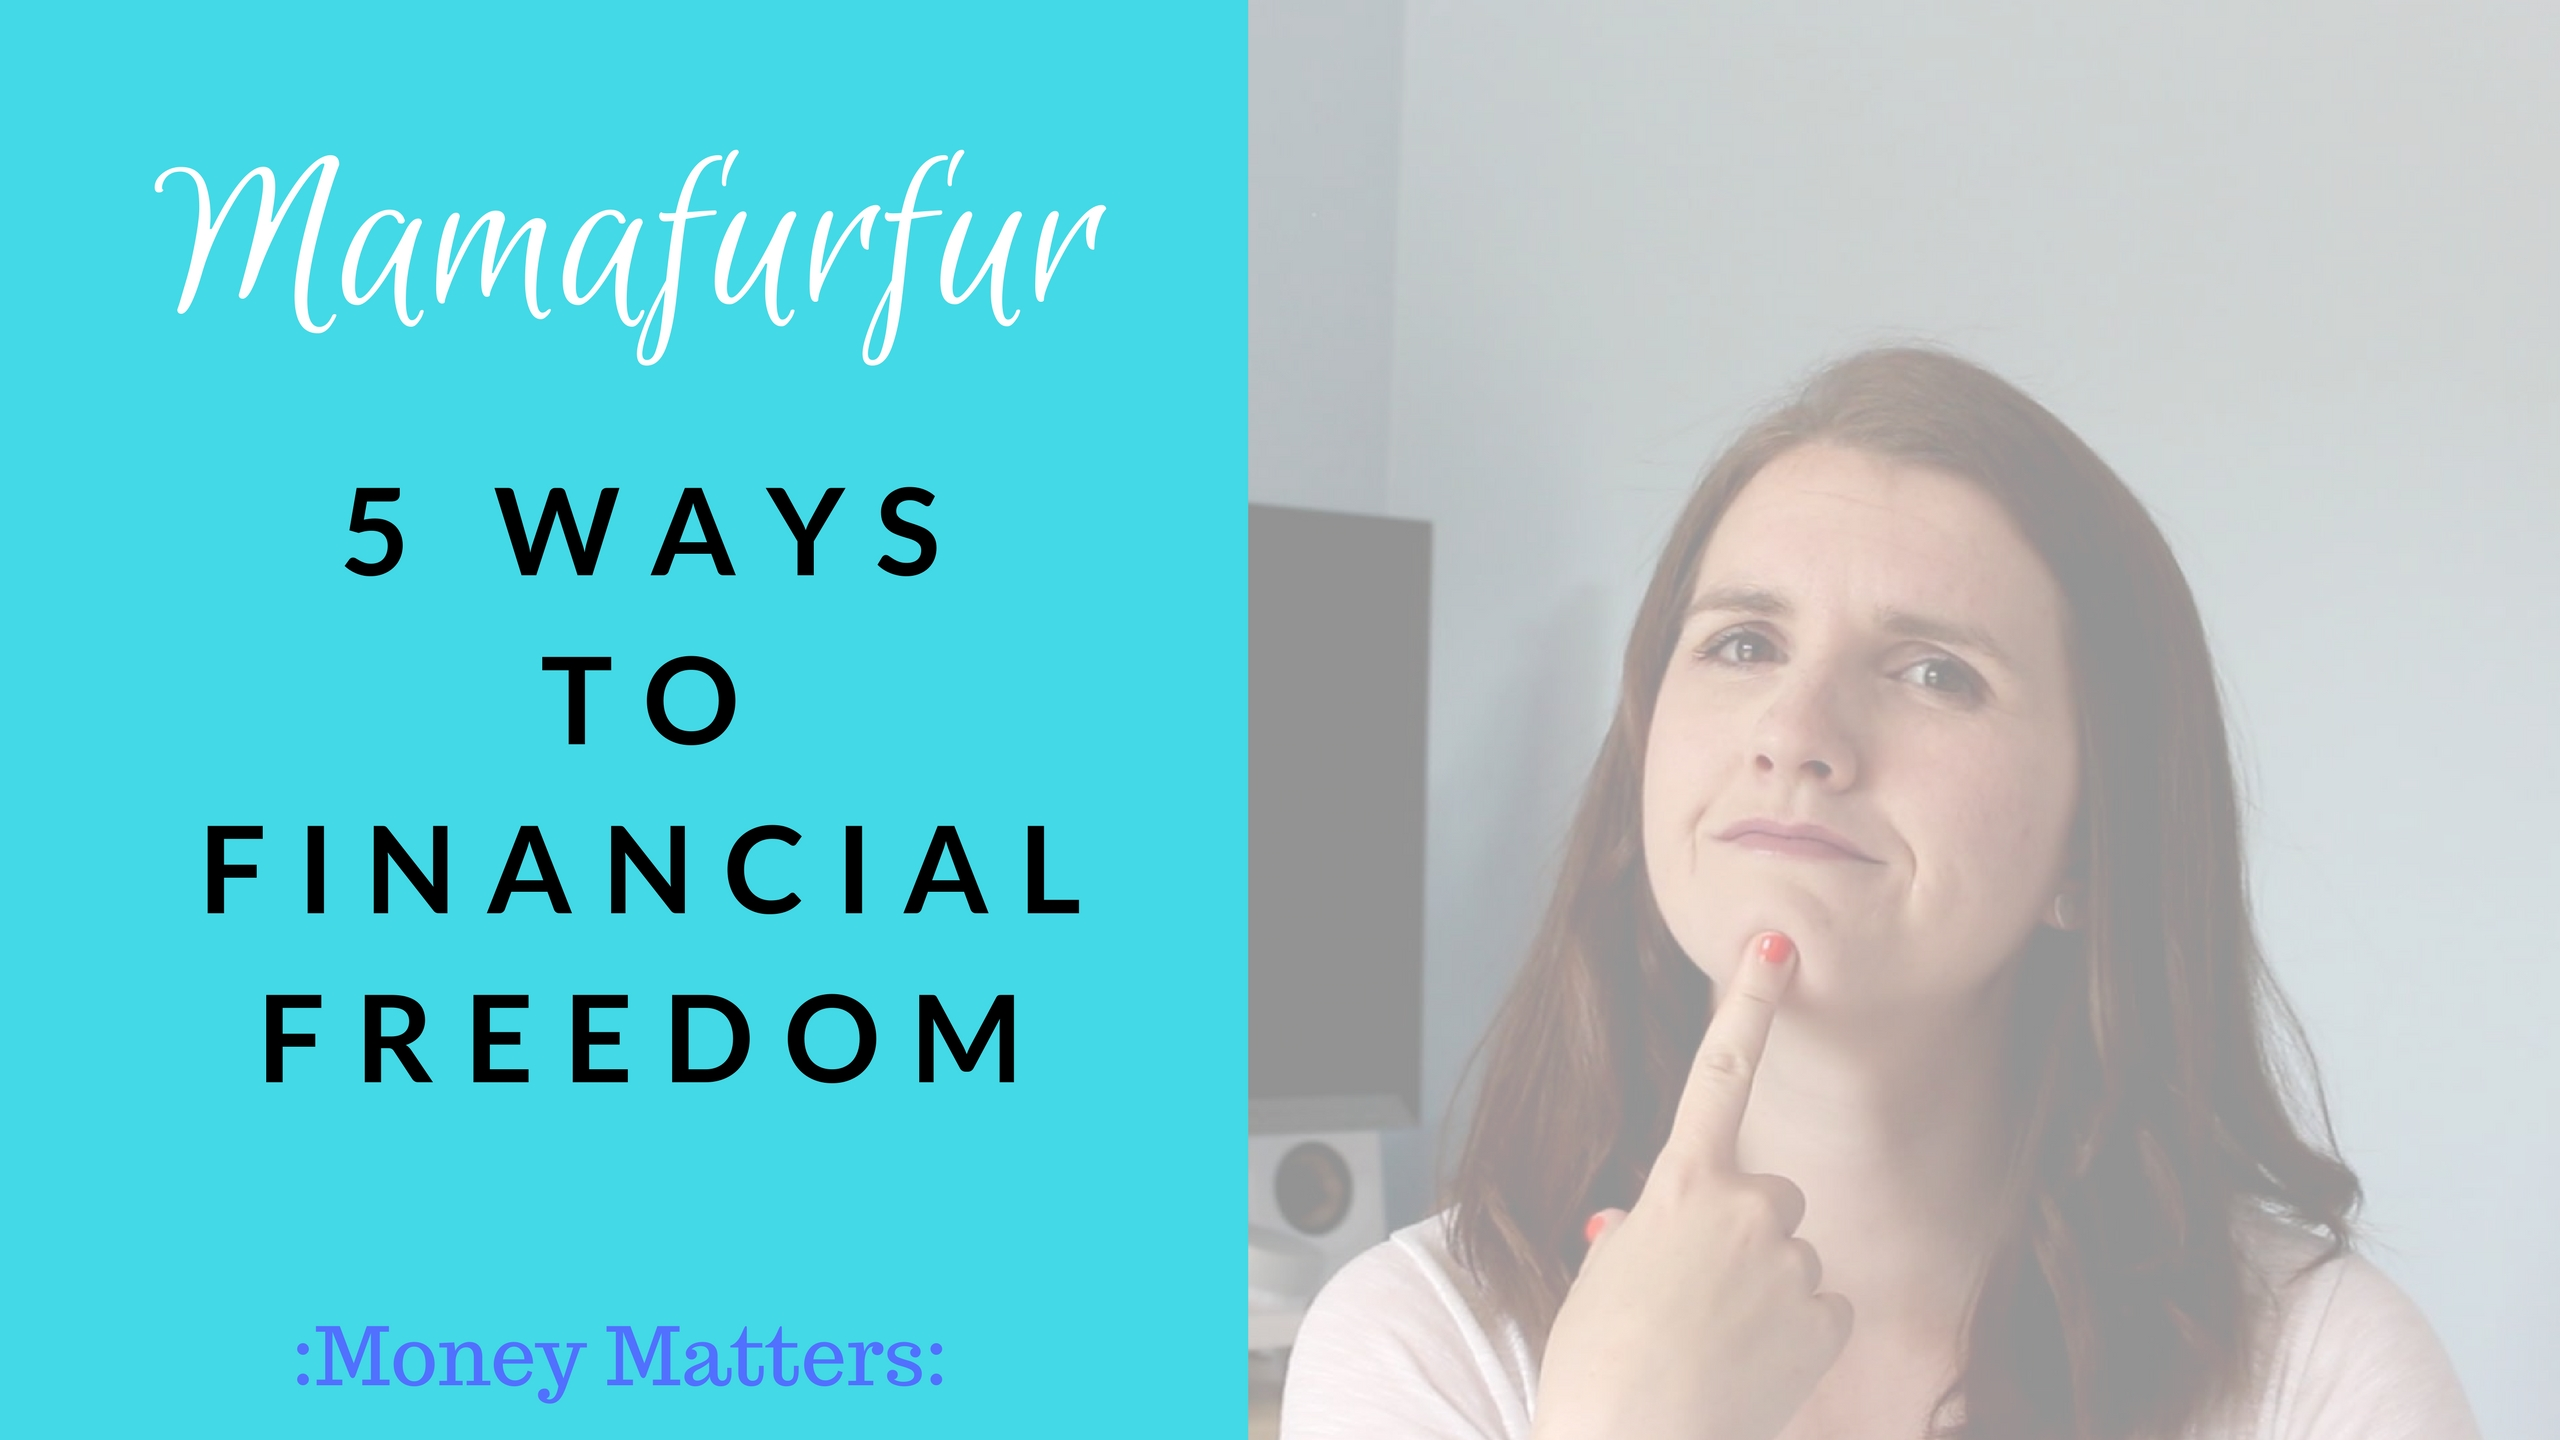 5 ways to Financial Freedom - Mamafurfur